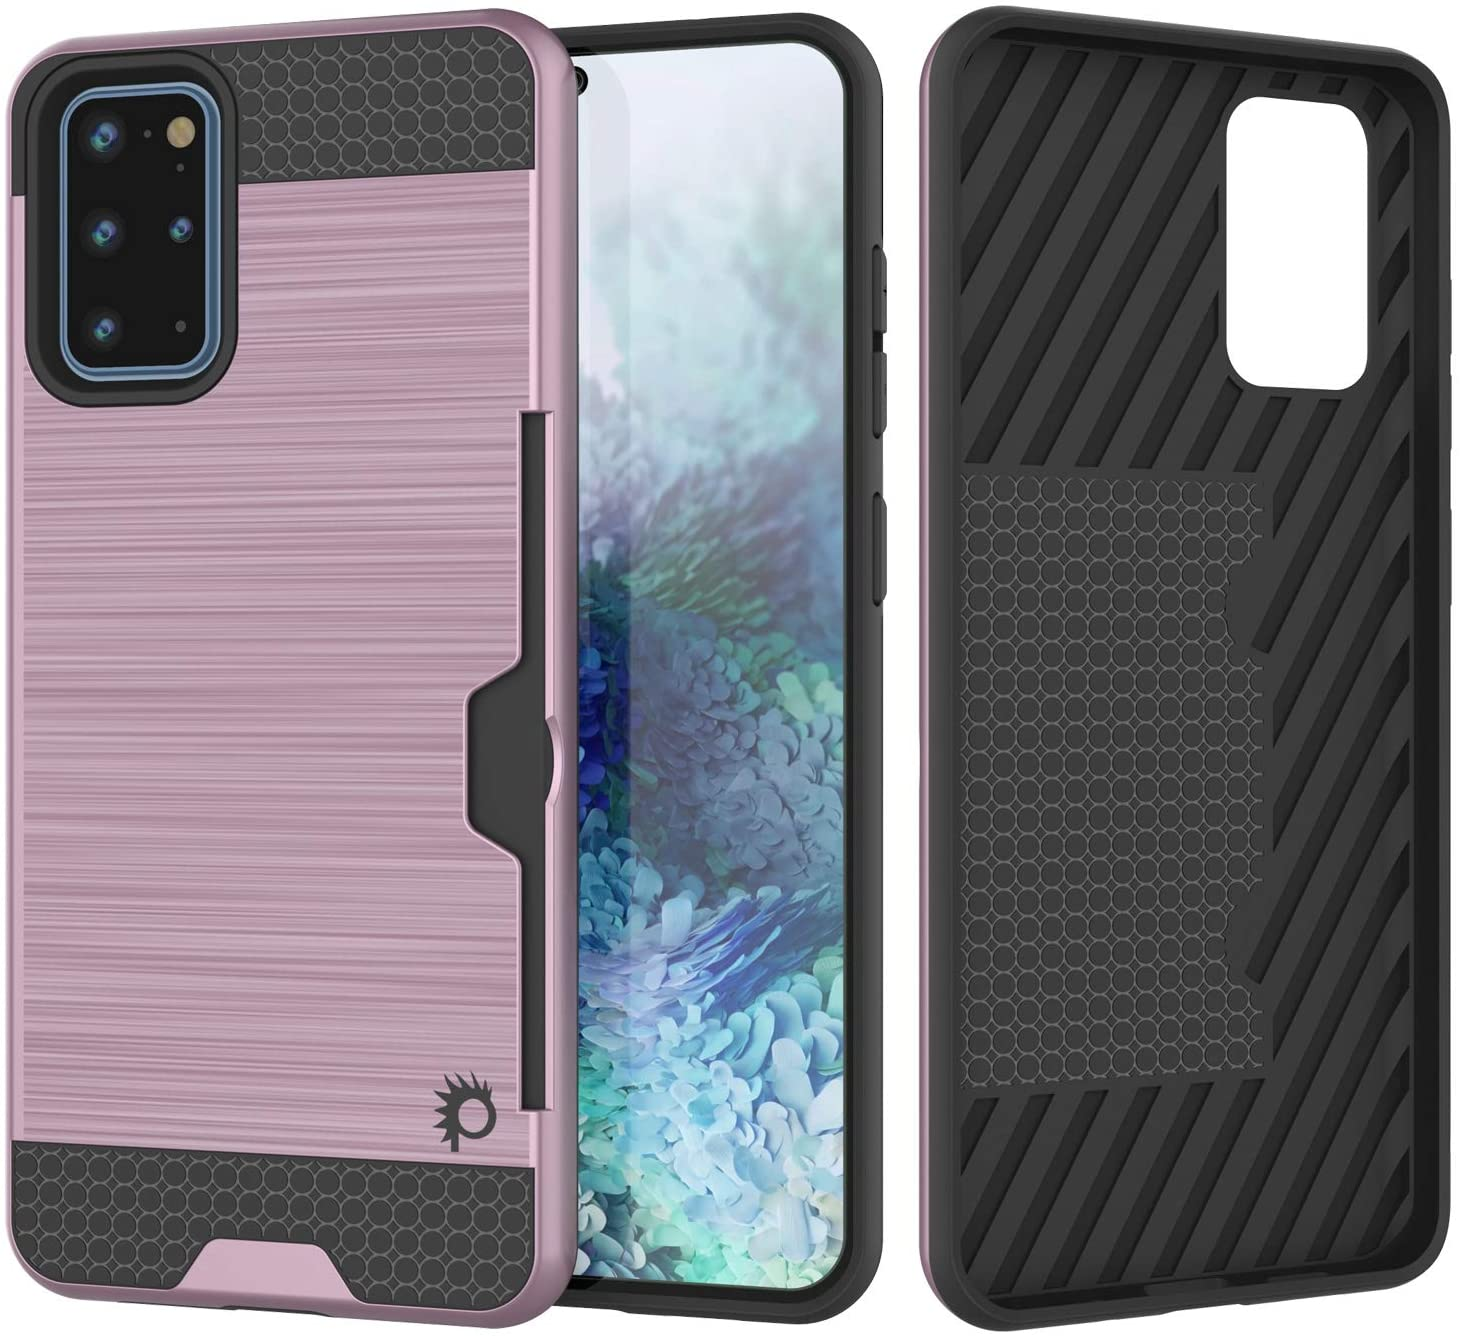 Galaxy S20+ Plus  Case, PUNKcase [SLOT Series] [Slim Fit] Dual-Layer Armor Cover w/Integrated Anti-Shock System, Credit Card Slot [Pink]